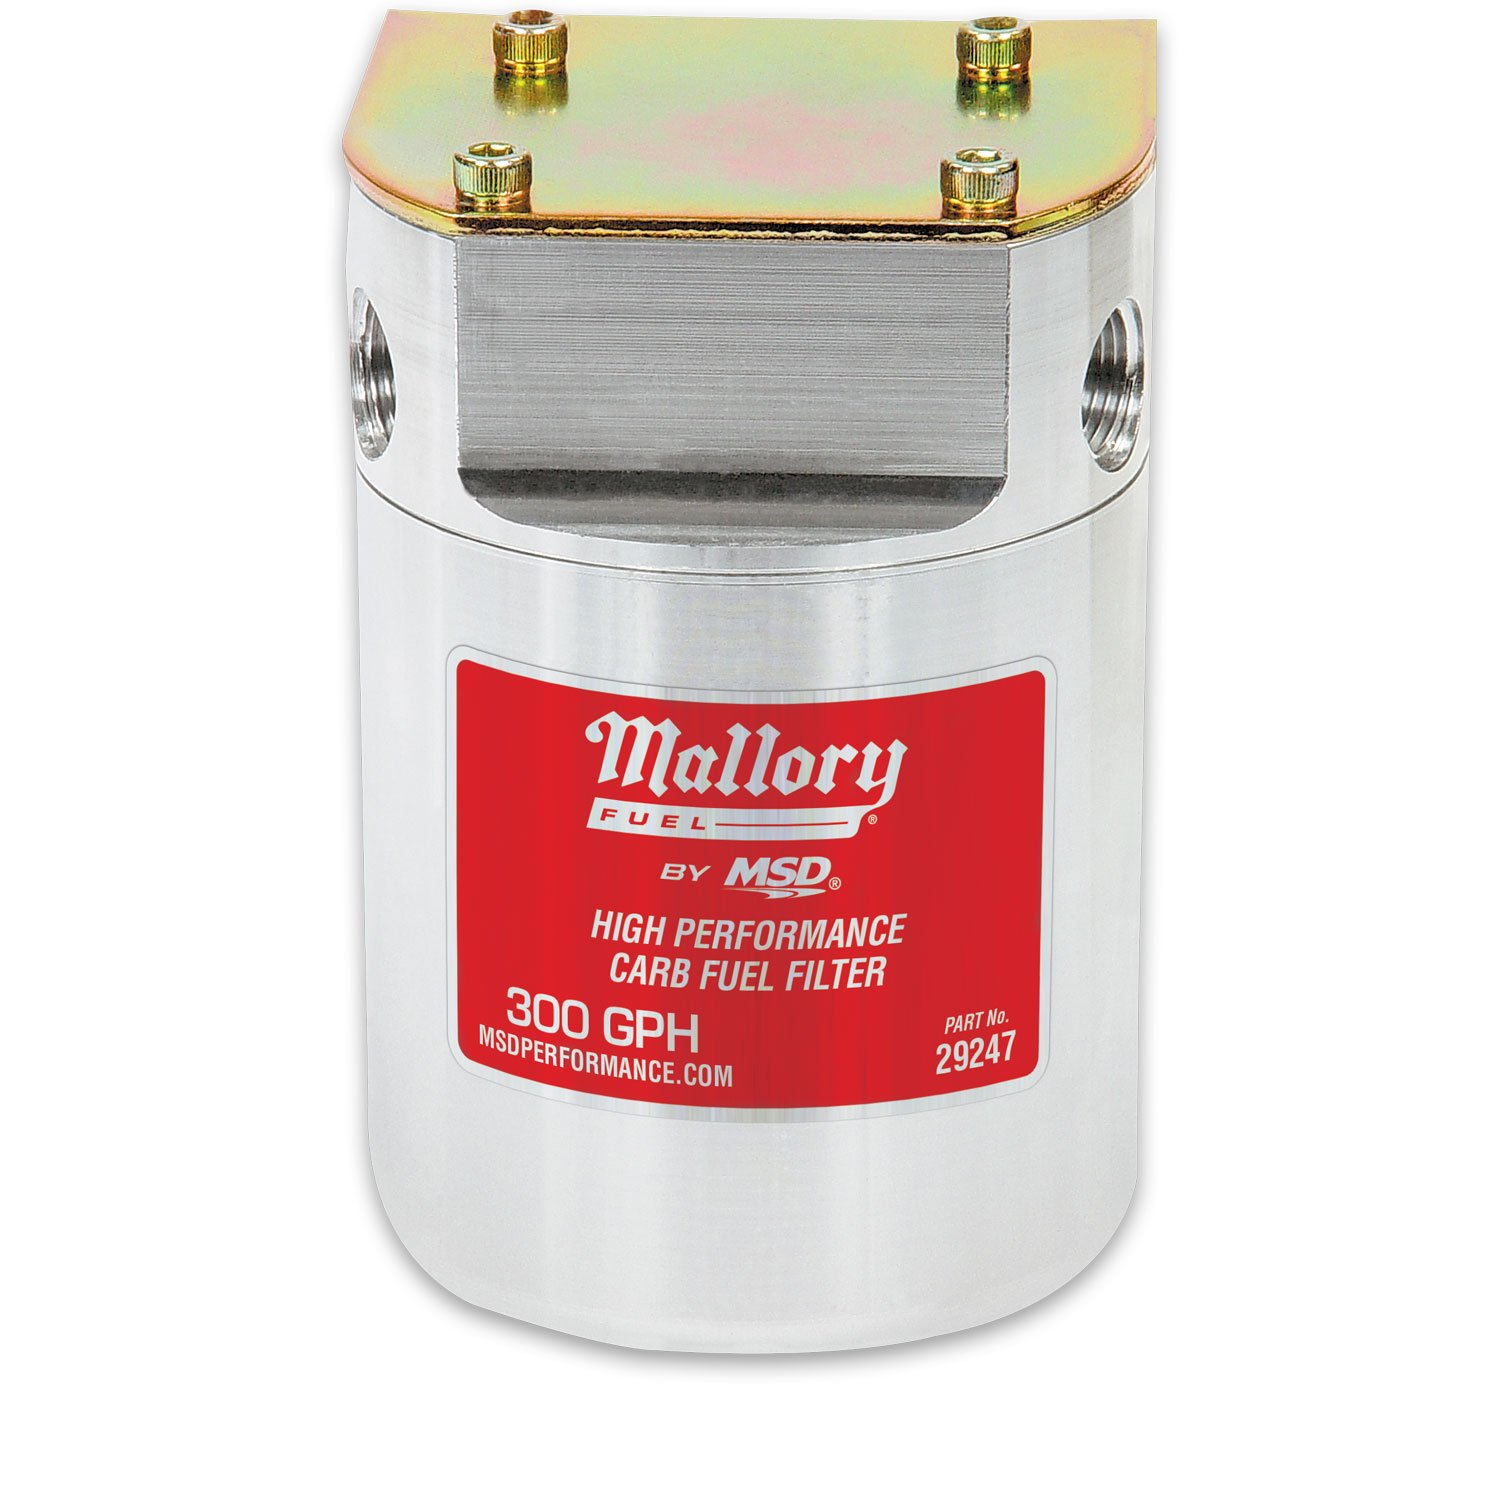 29247 - Mallory Low Pressure Carbureted Fuel Filter Image